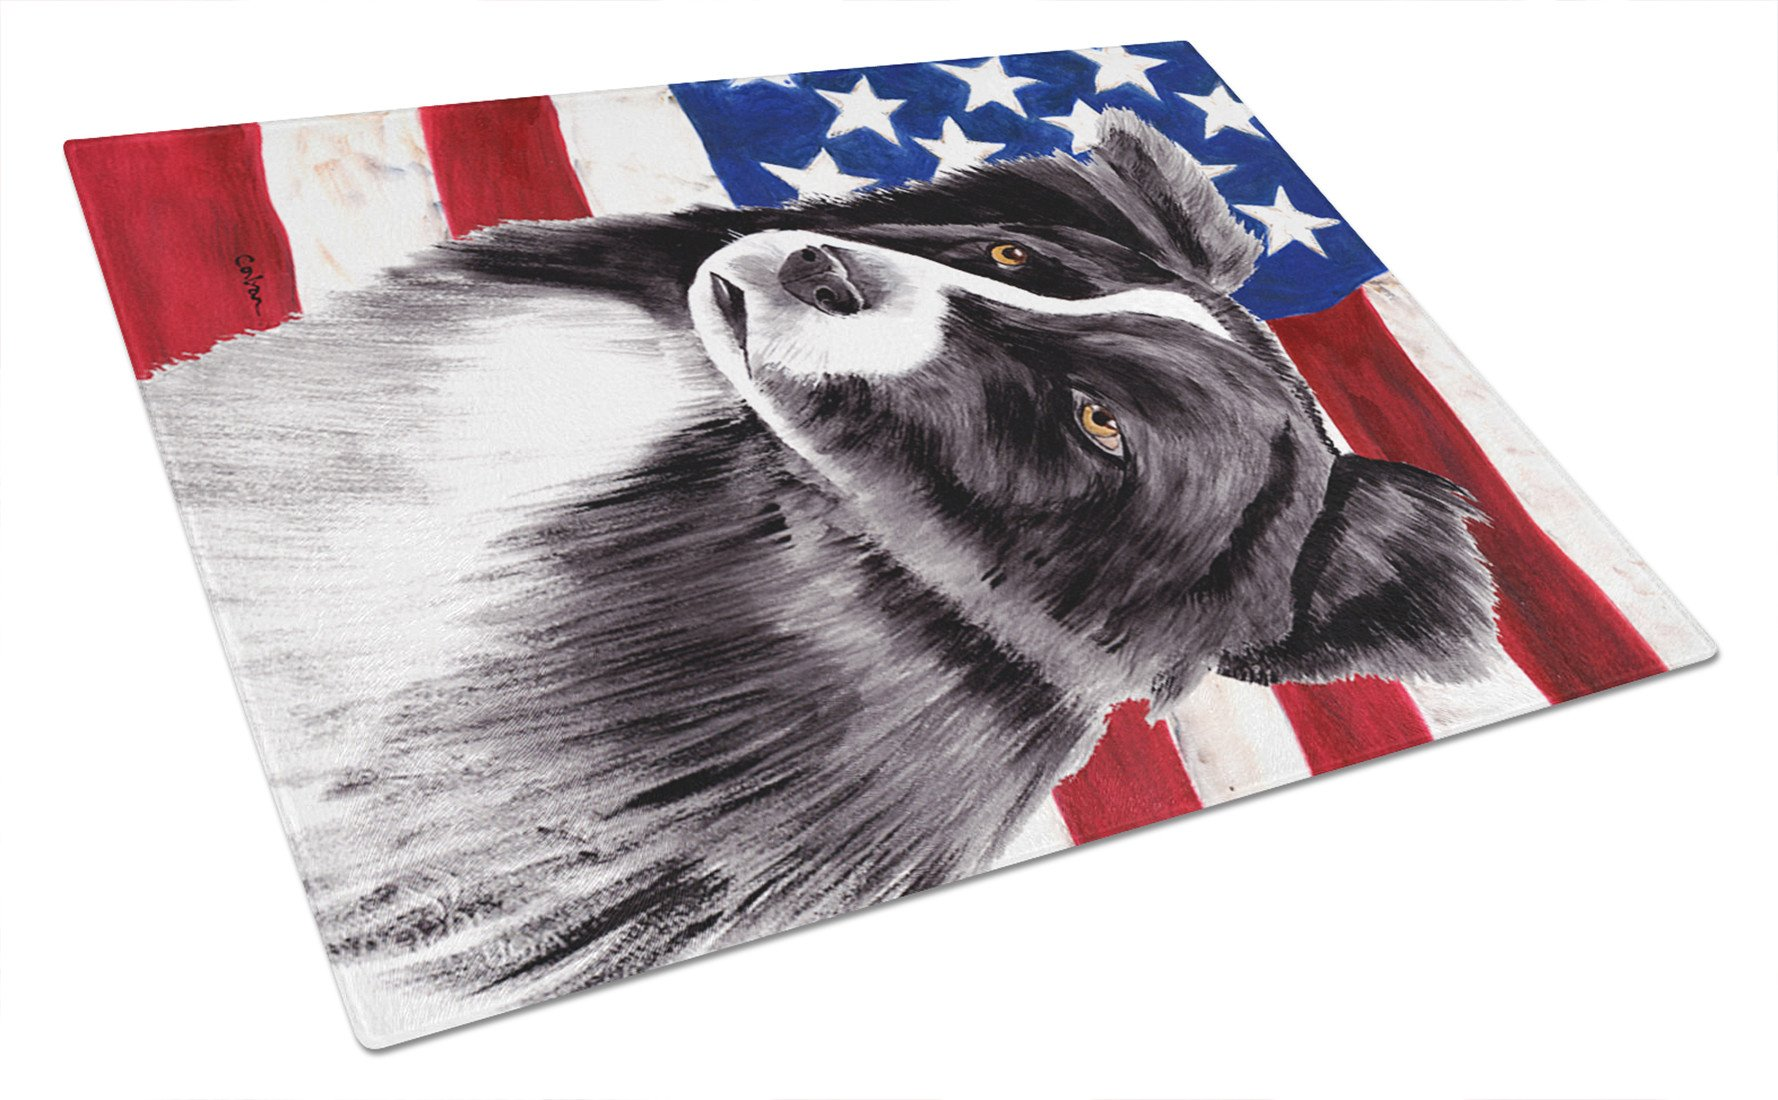 USA American Flag with Border Collie Glass Cutting Board Large by Caroline's Treasures